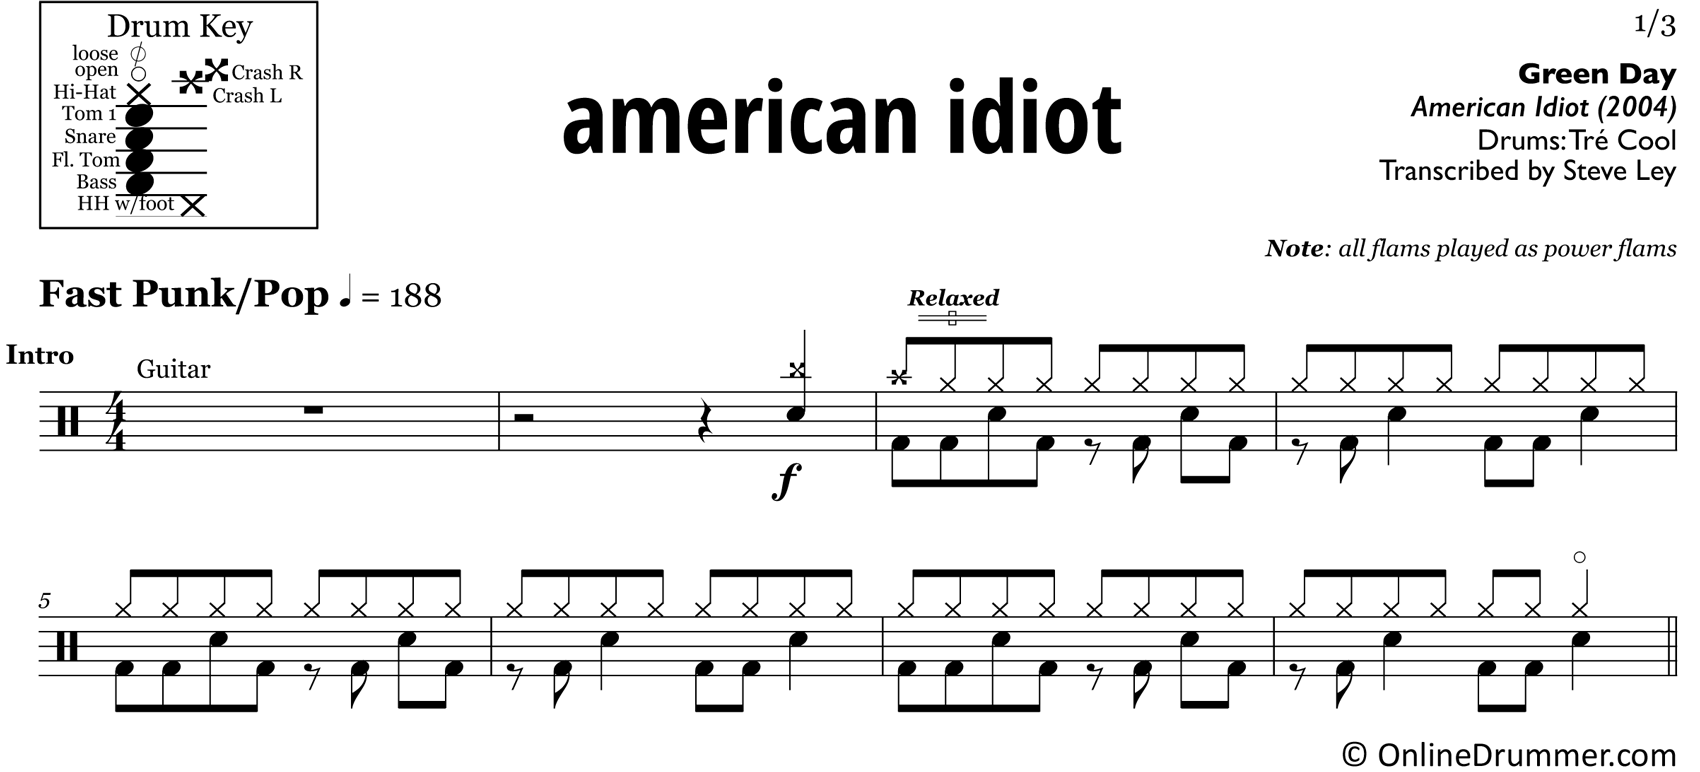 American Idiot - Green Day - Drum Sheet Music